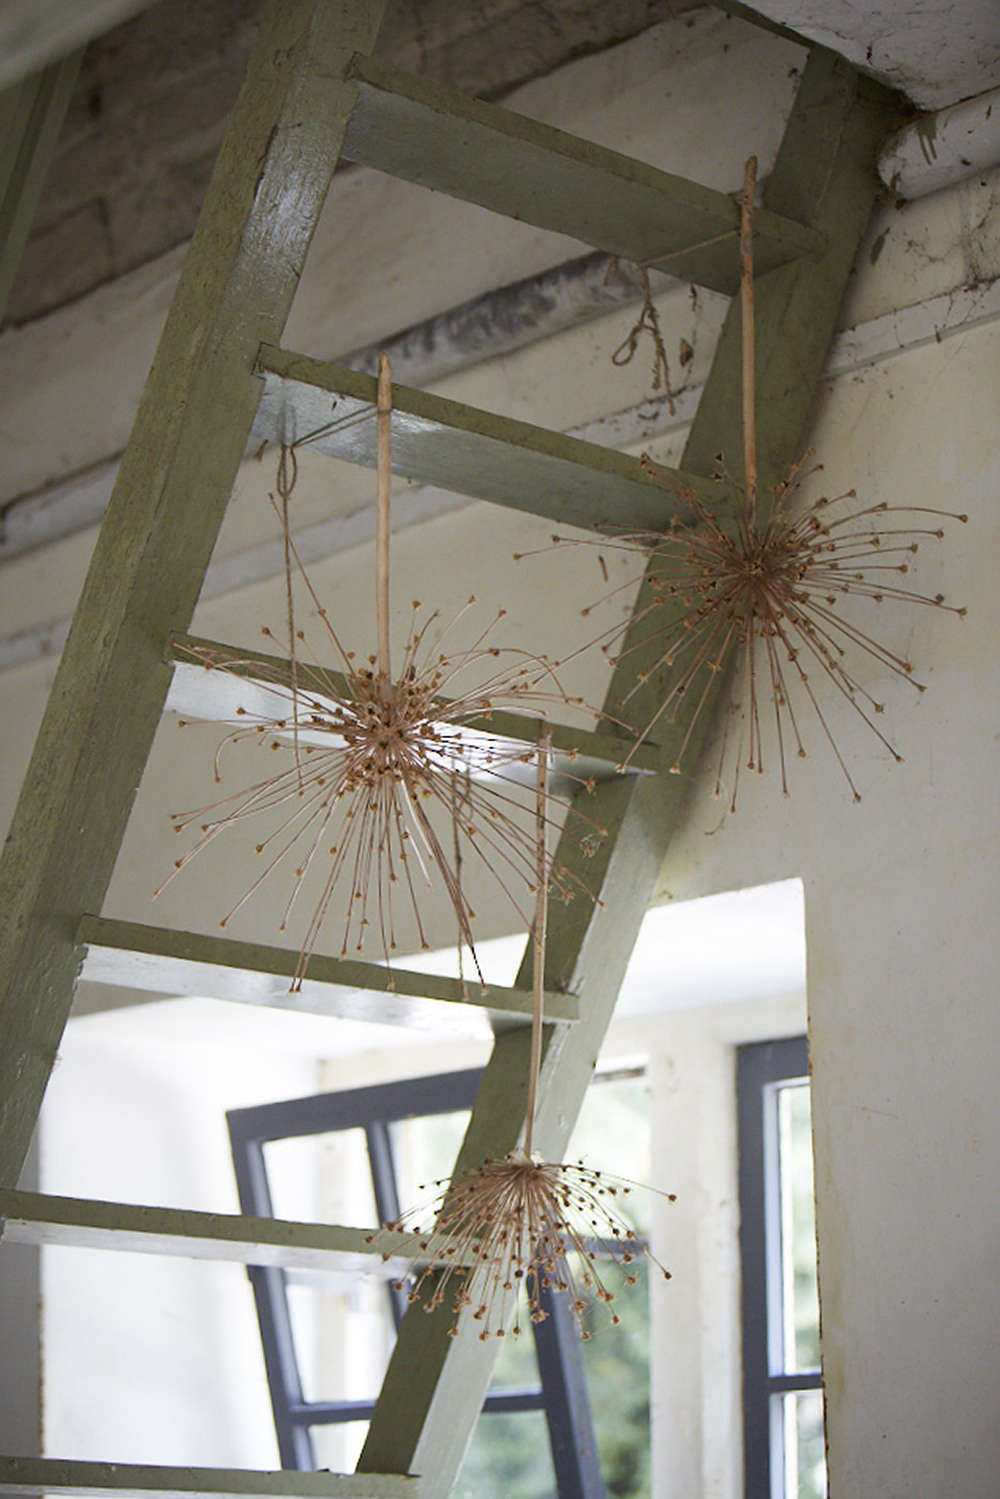 Dried alliums are tied to the hayloft steps, their stems pierced and strung.